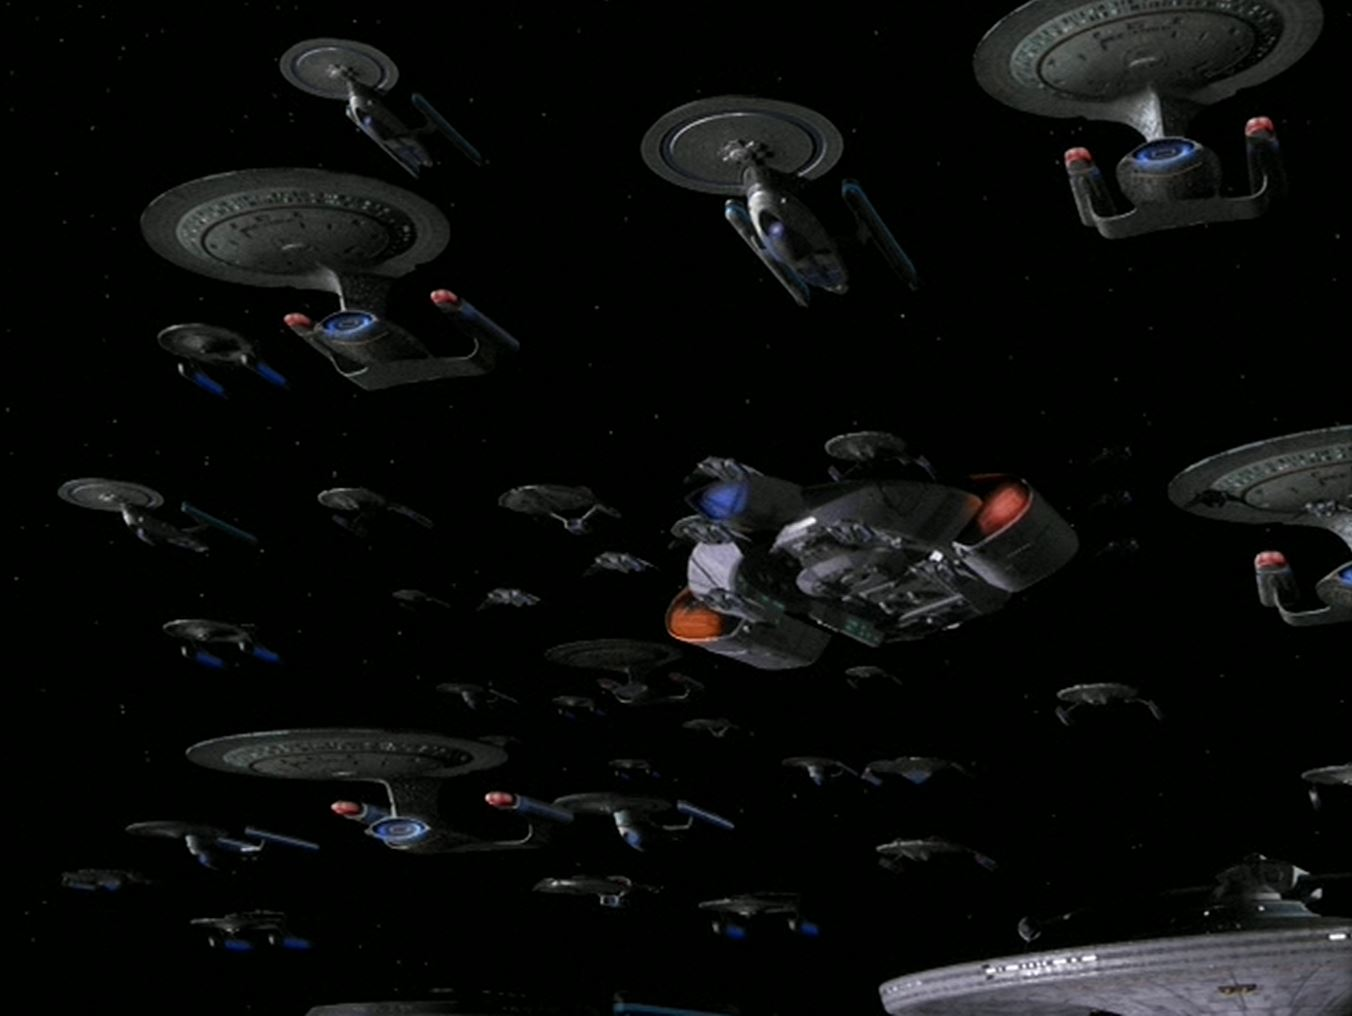 Fleet on Star Trek Federation Klingon Romulan Fleet